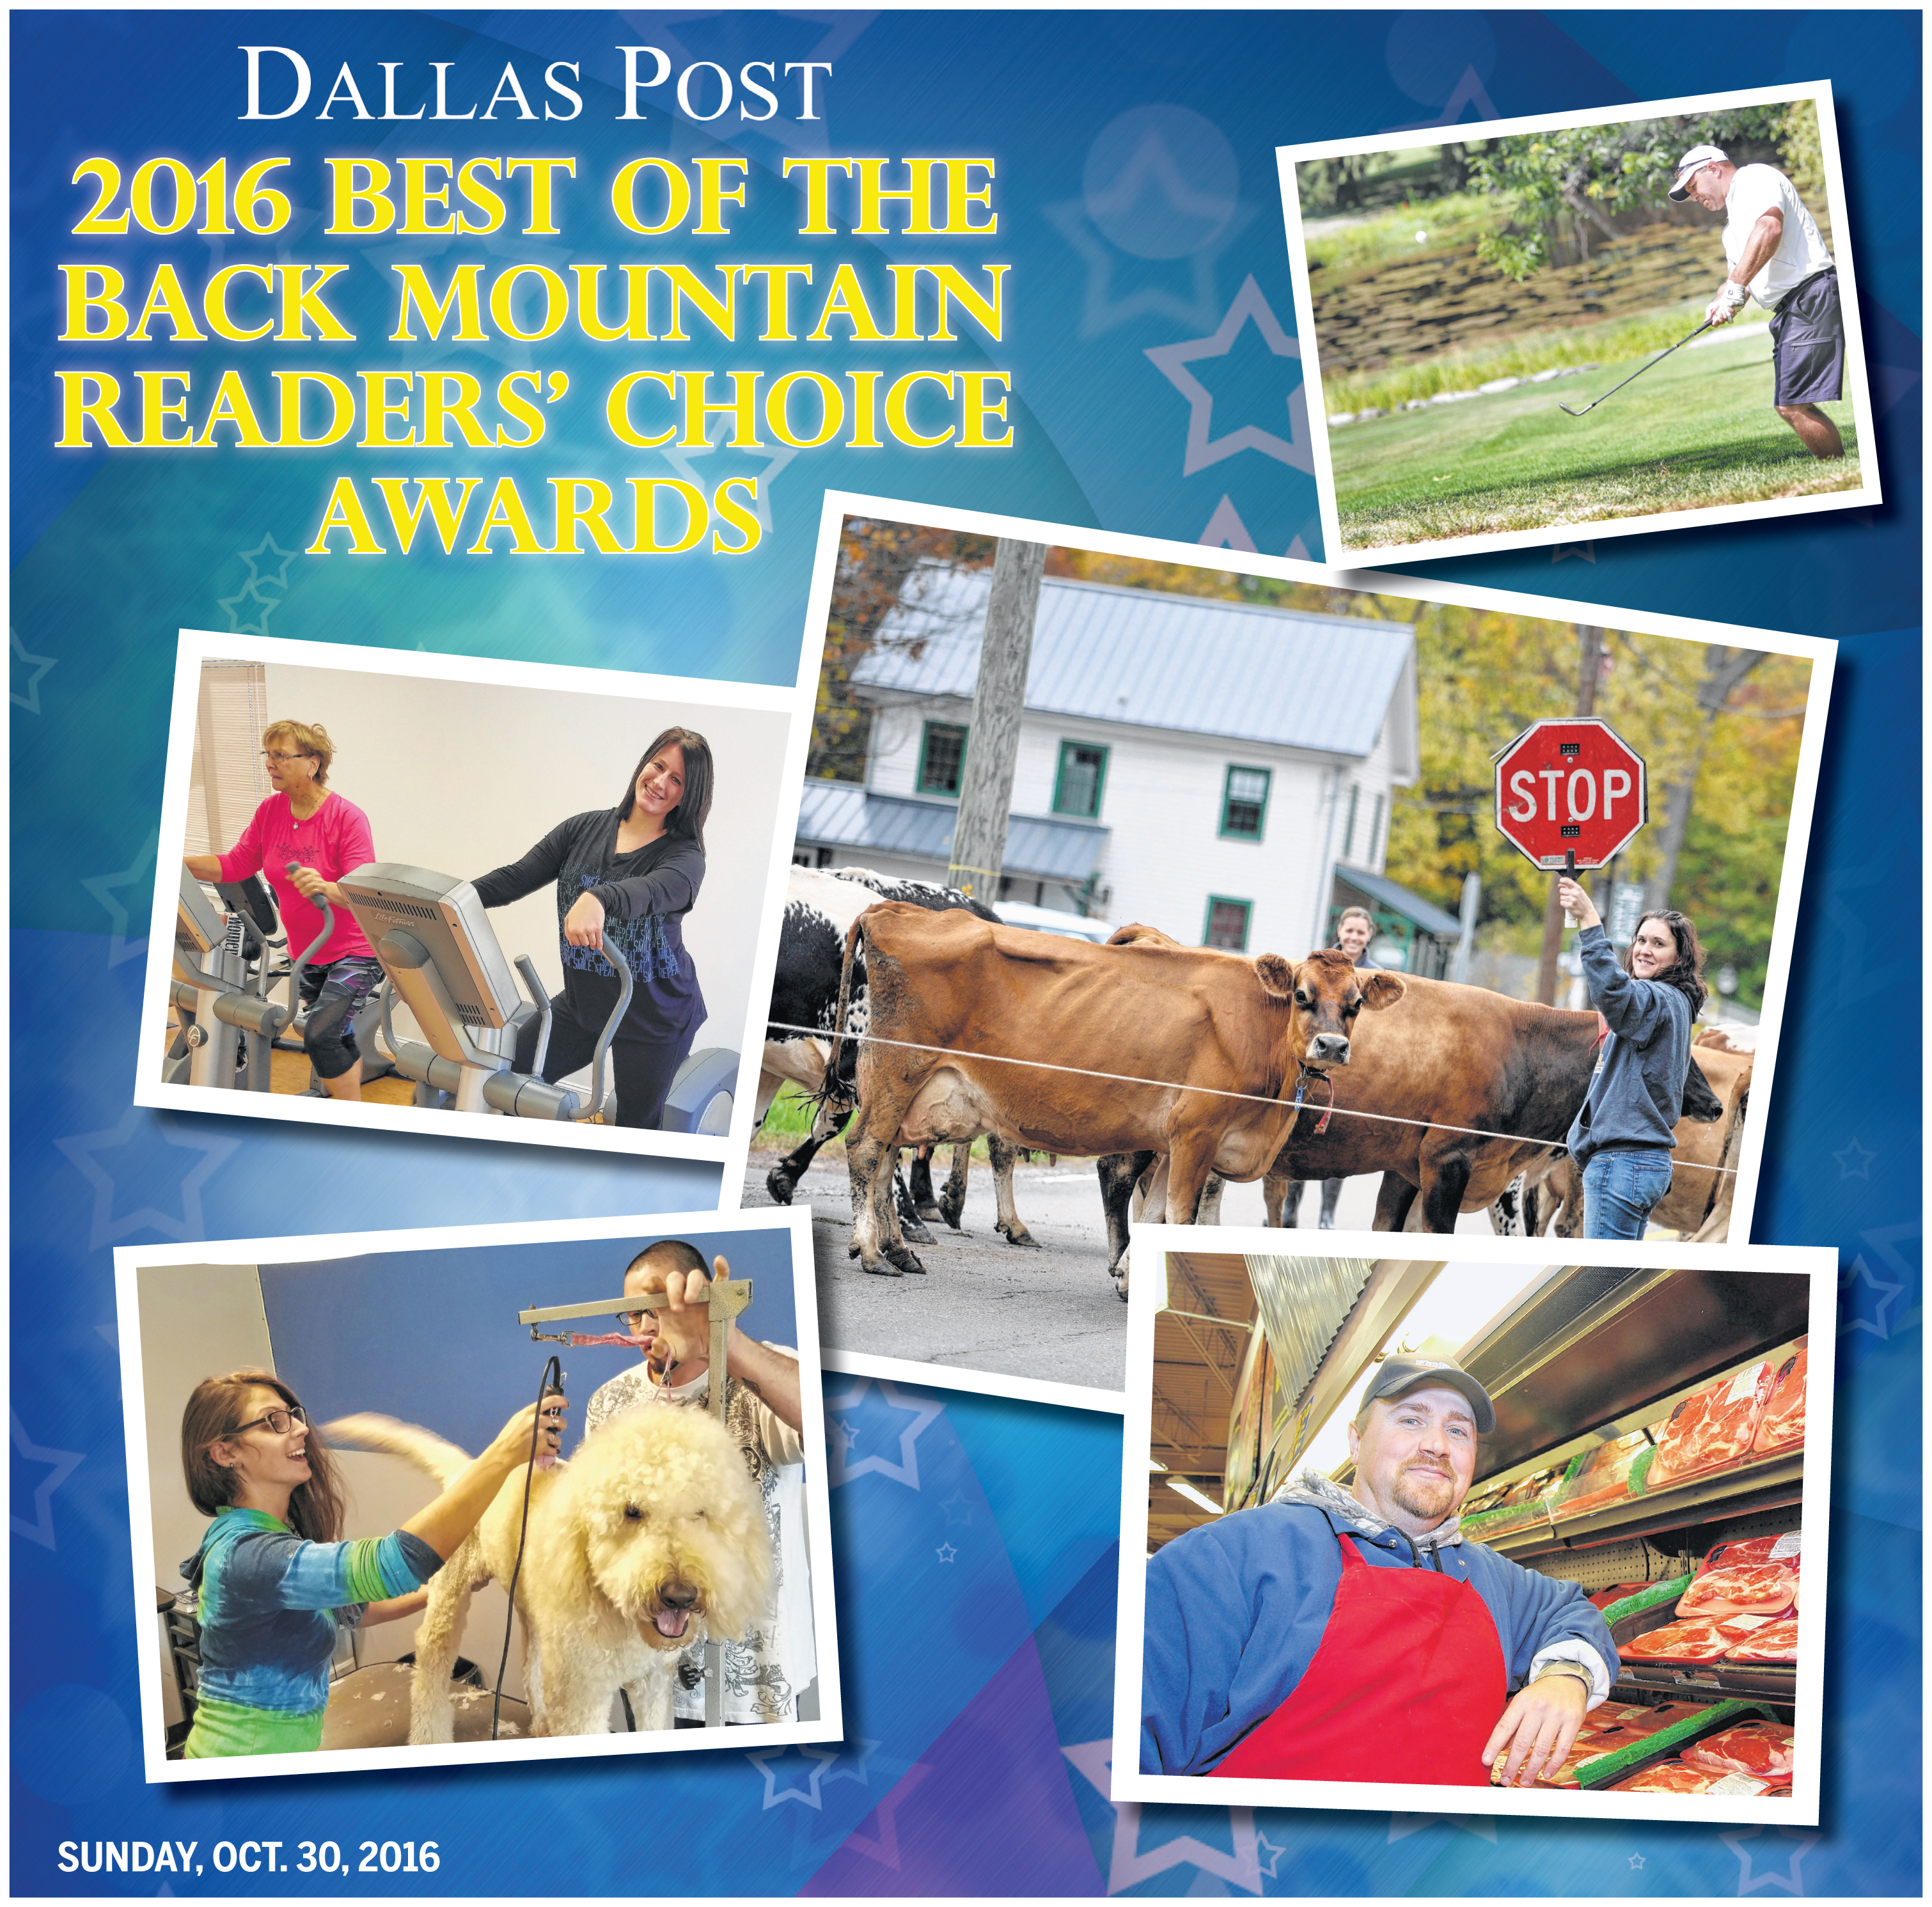 Best of the Back Mountain Readers' Choice Awards 2016